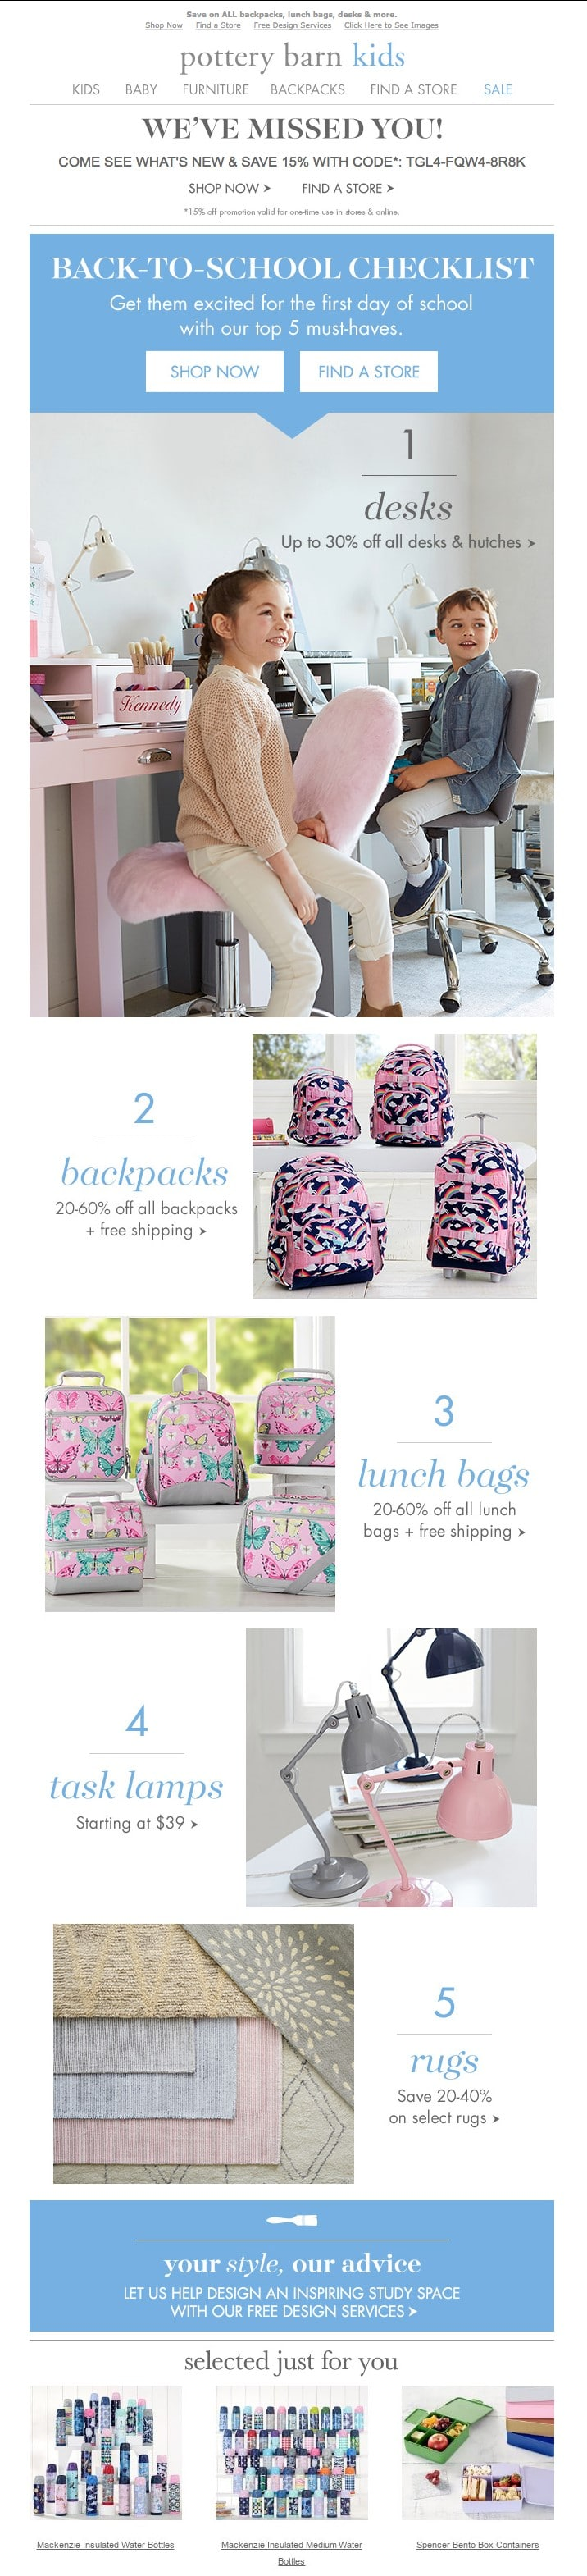 Pottery Barn - back to school email